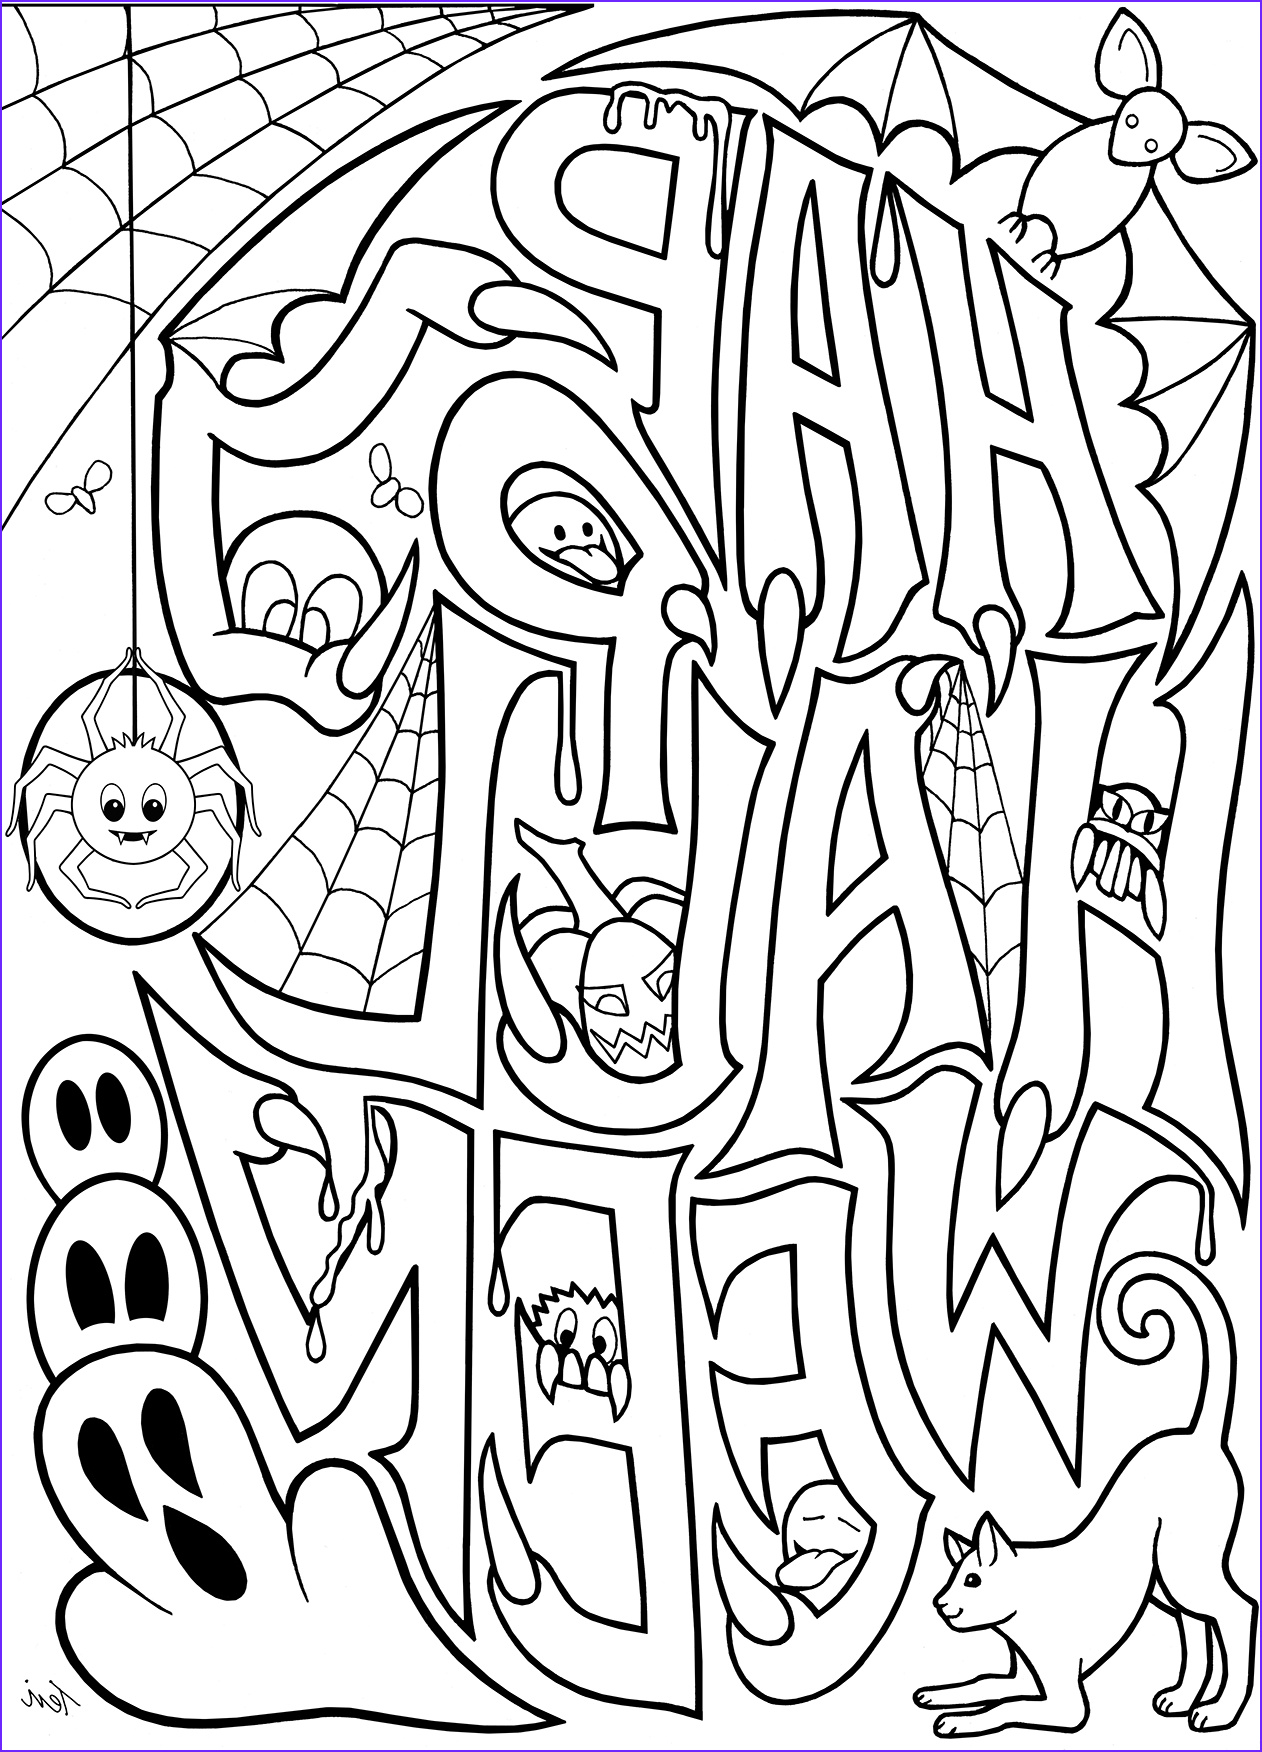 Printable Coloring Pages Halloween Elegant Photos Free Adult Coloring Book Pages Happy Halloween by Blue